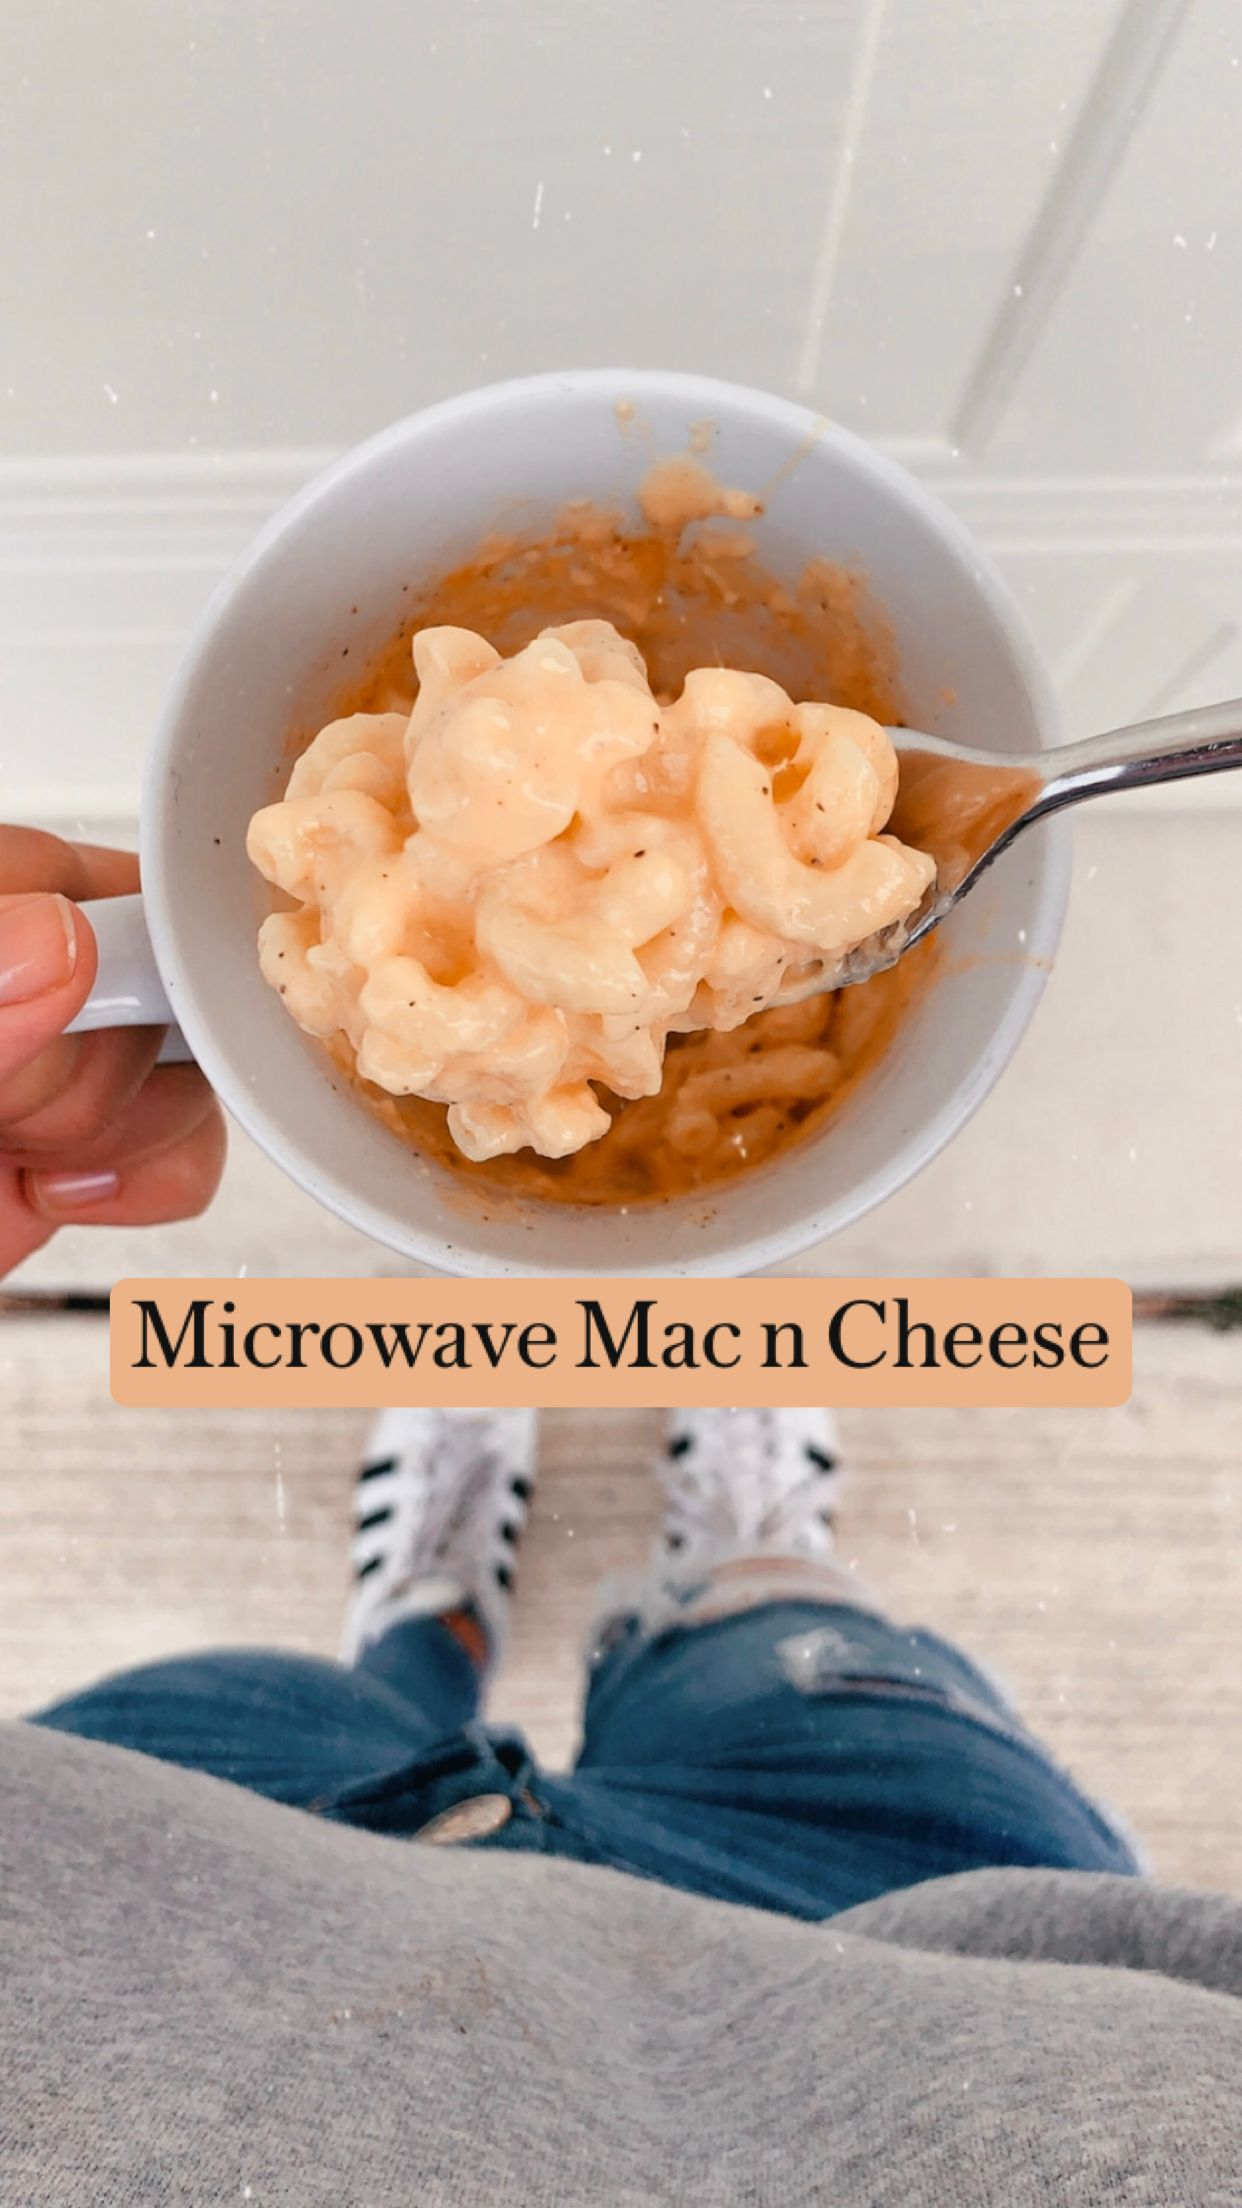 Microwave Mac n Cheese